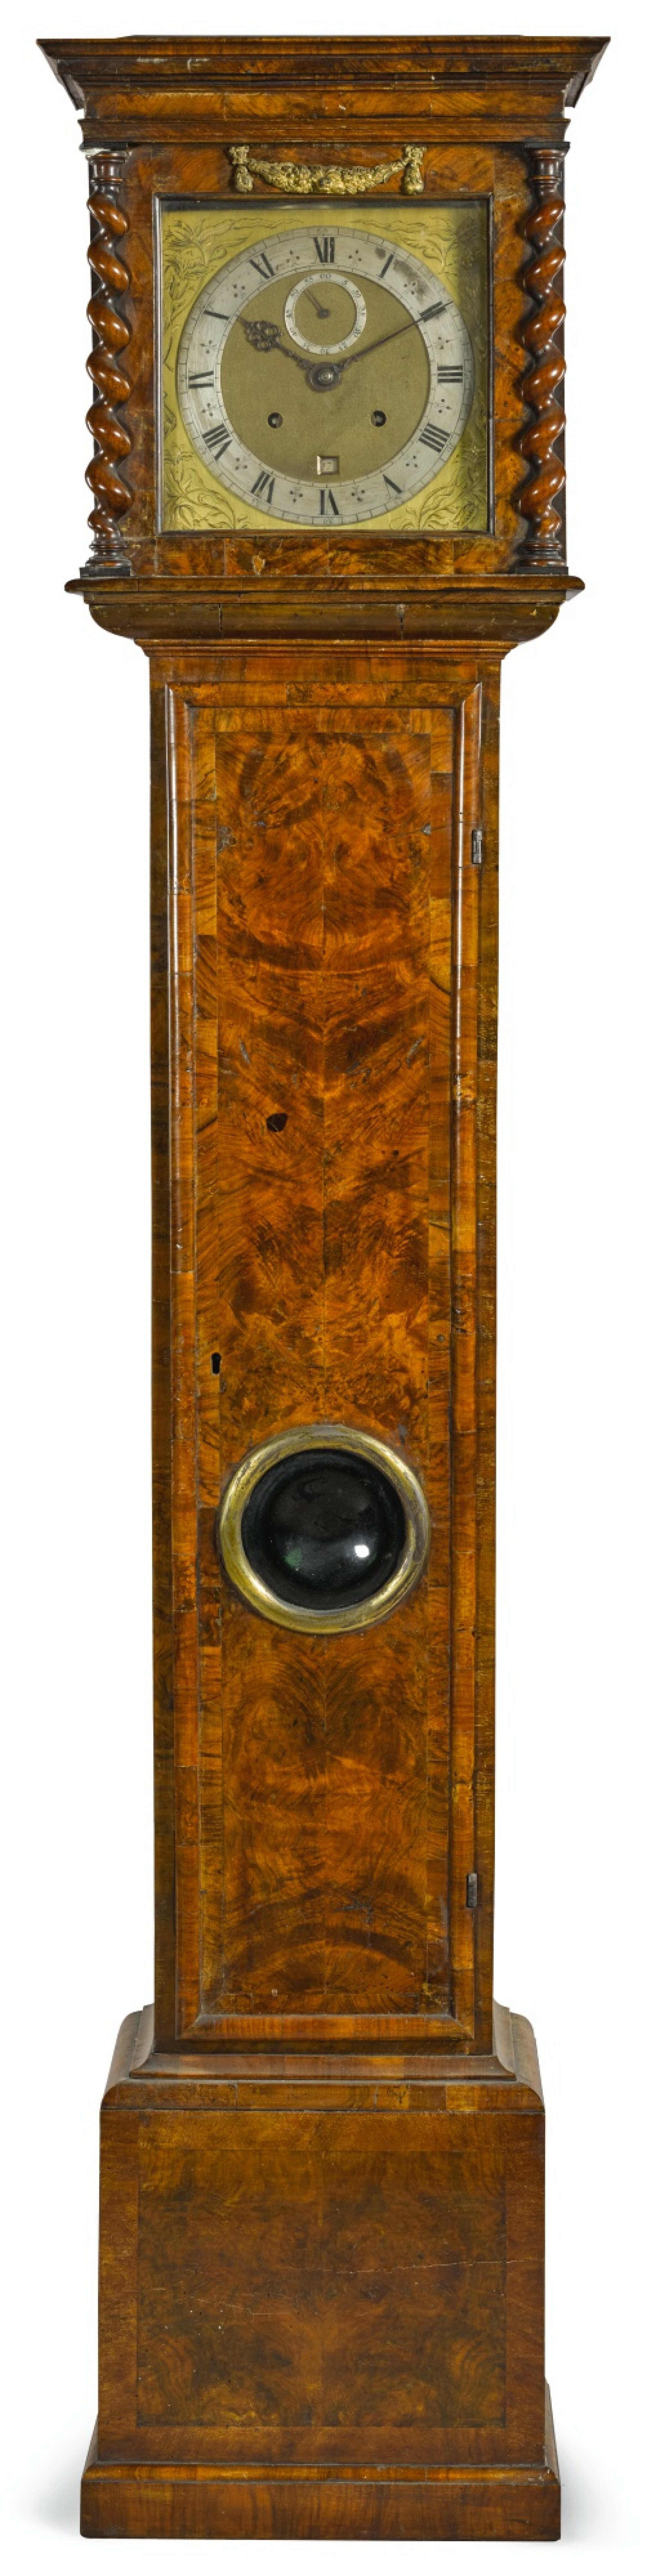 View full screen - View 1 of Lot 97.  JOSEPH KNIBB | A WALNUT MONTH-GOING LONGCASE CLOCK, LONDON, CIRCA 1675 AND LATER, MOVEMENT AND CASE ASSOCIATED.